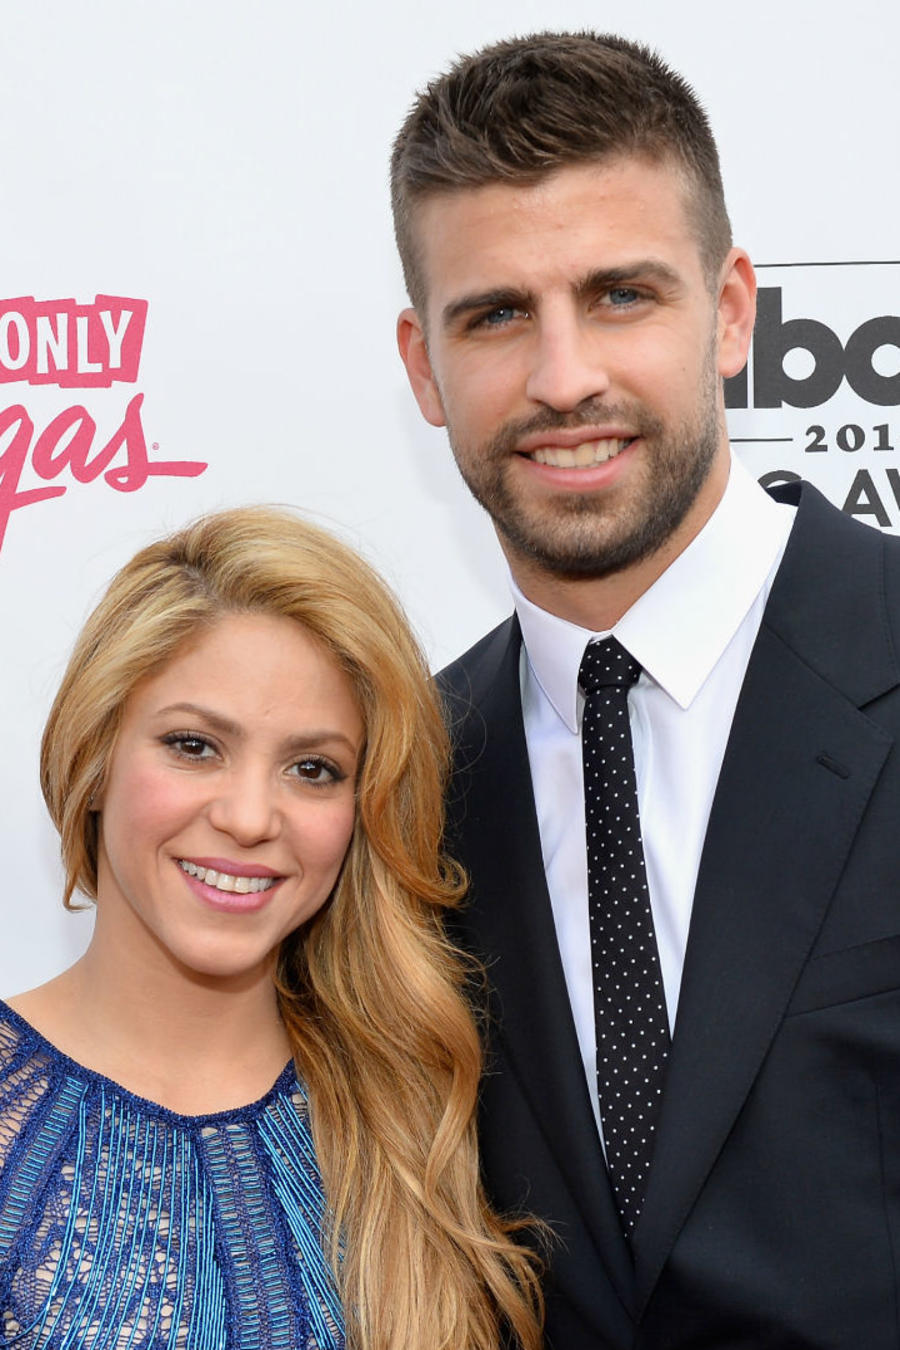 Shakira y Gerard Piqué en Billboard Music Awards 2014